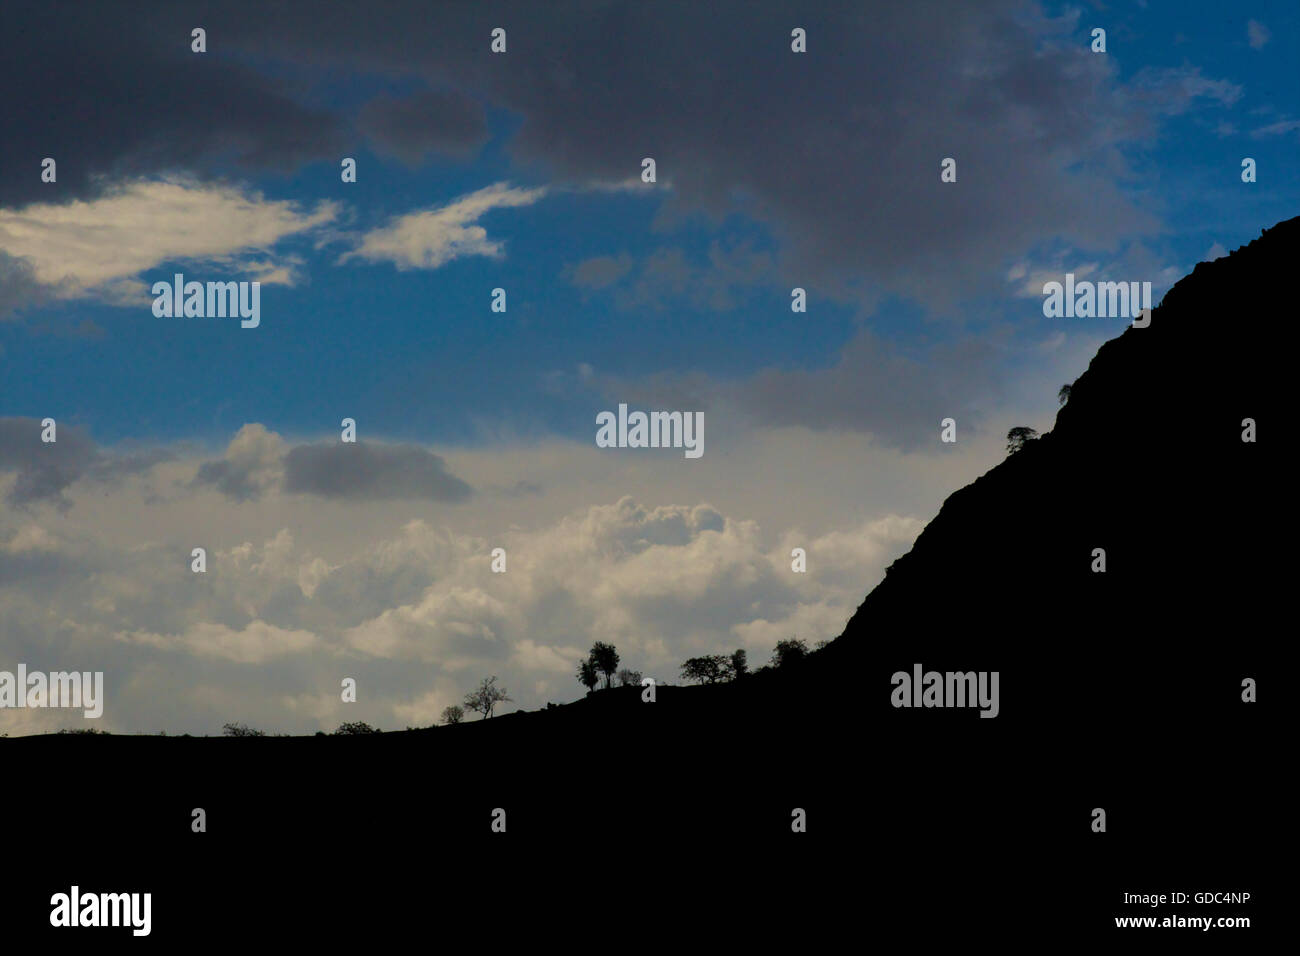 Silhouetted trees on a ridge against the sky. Simien mountains, Ethiopia. - Stock Image